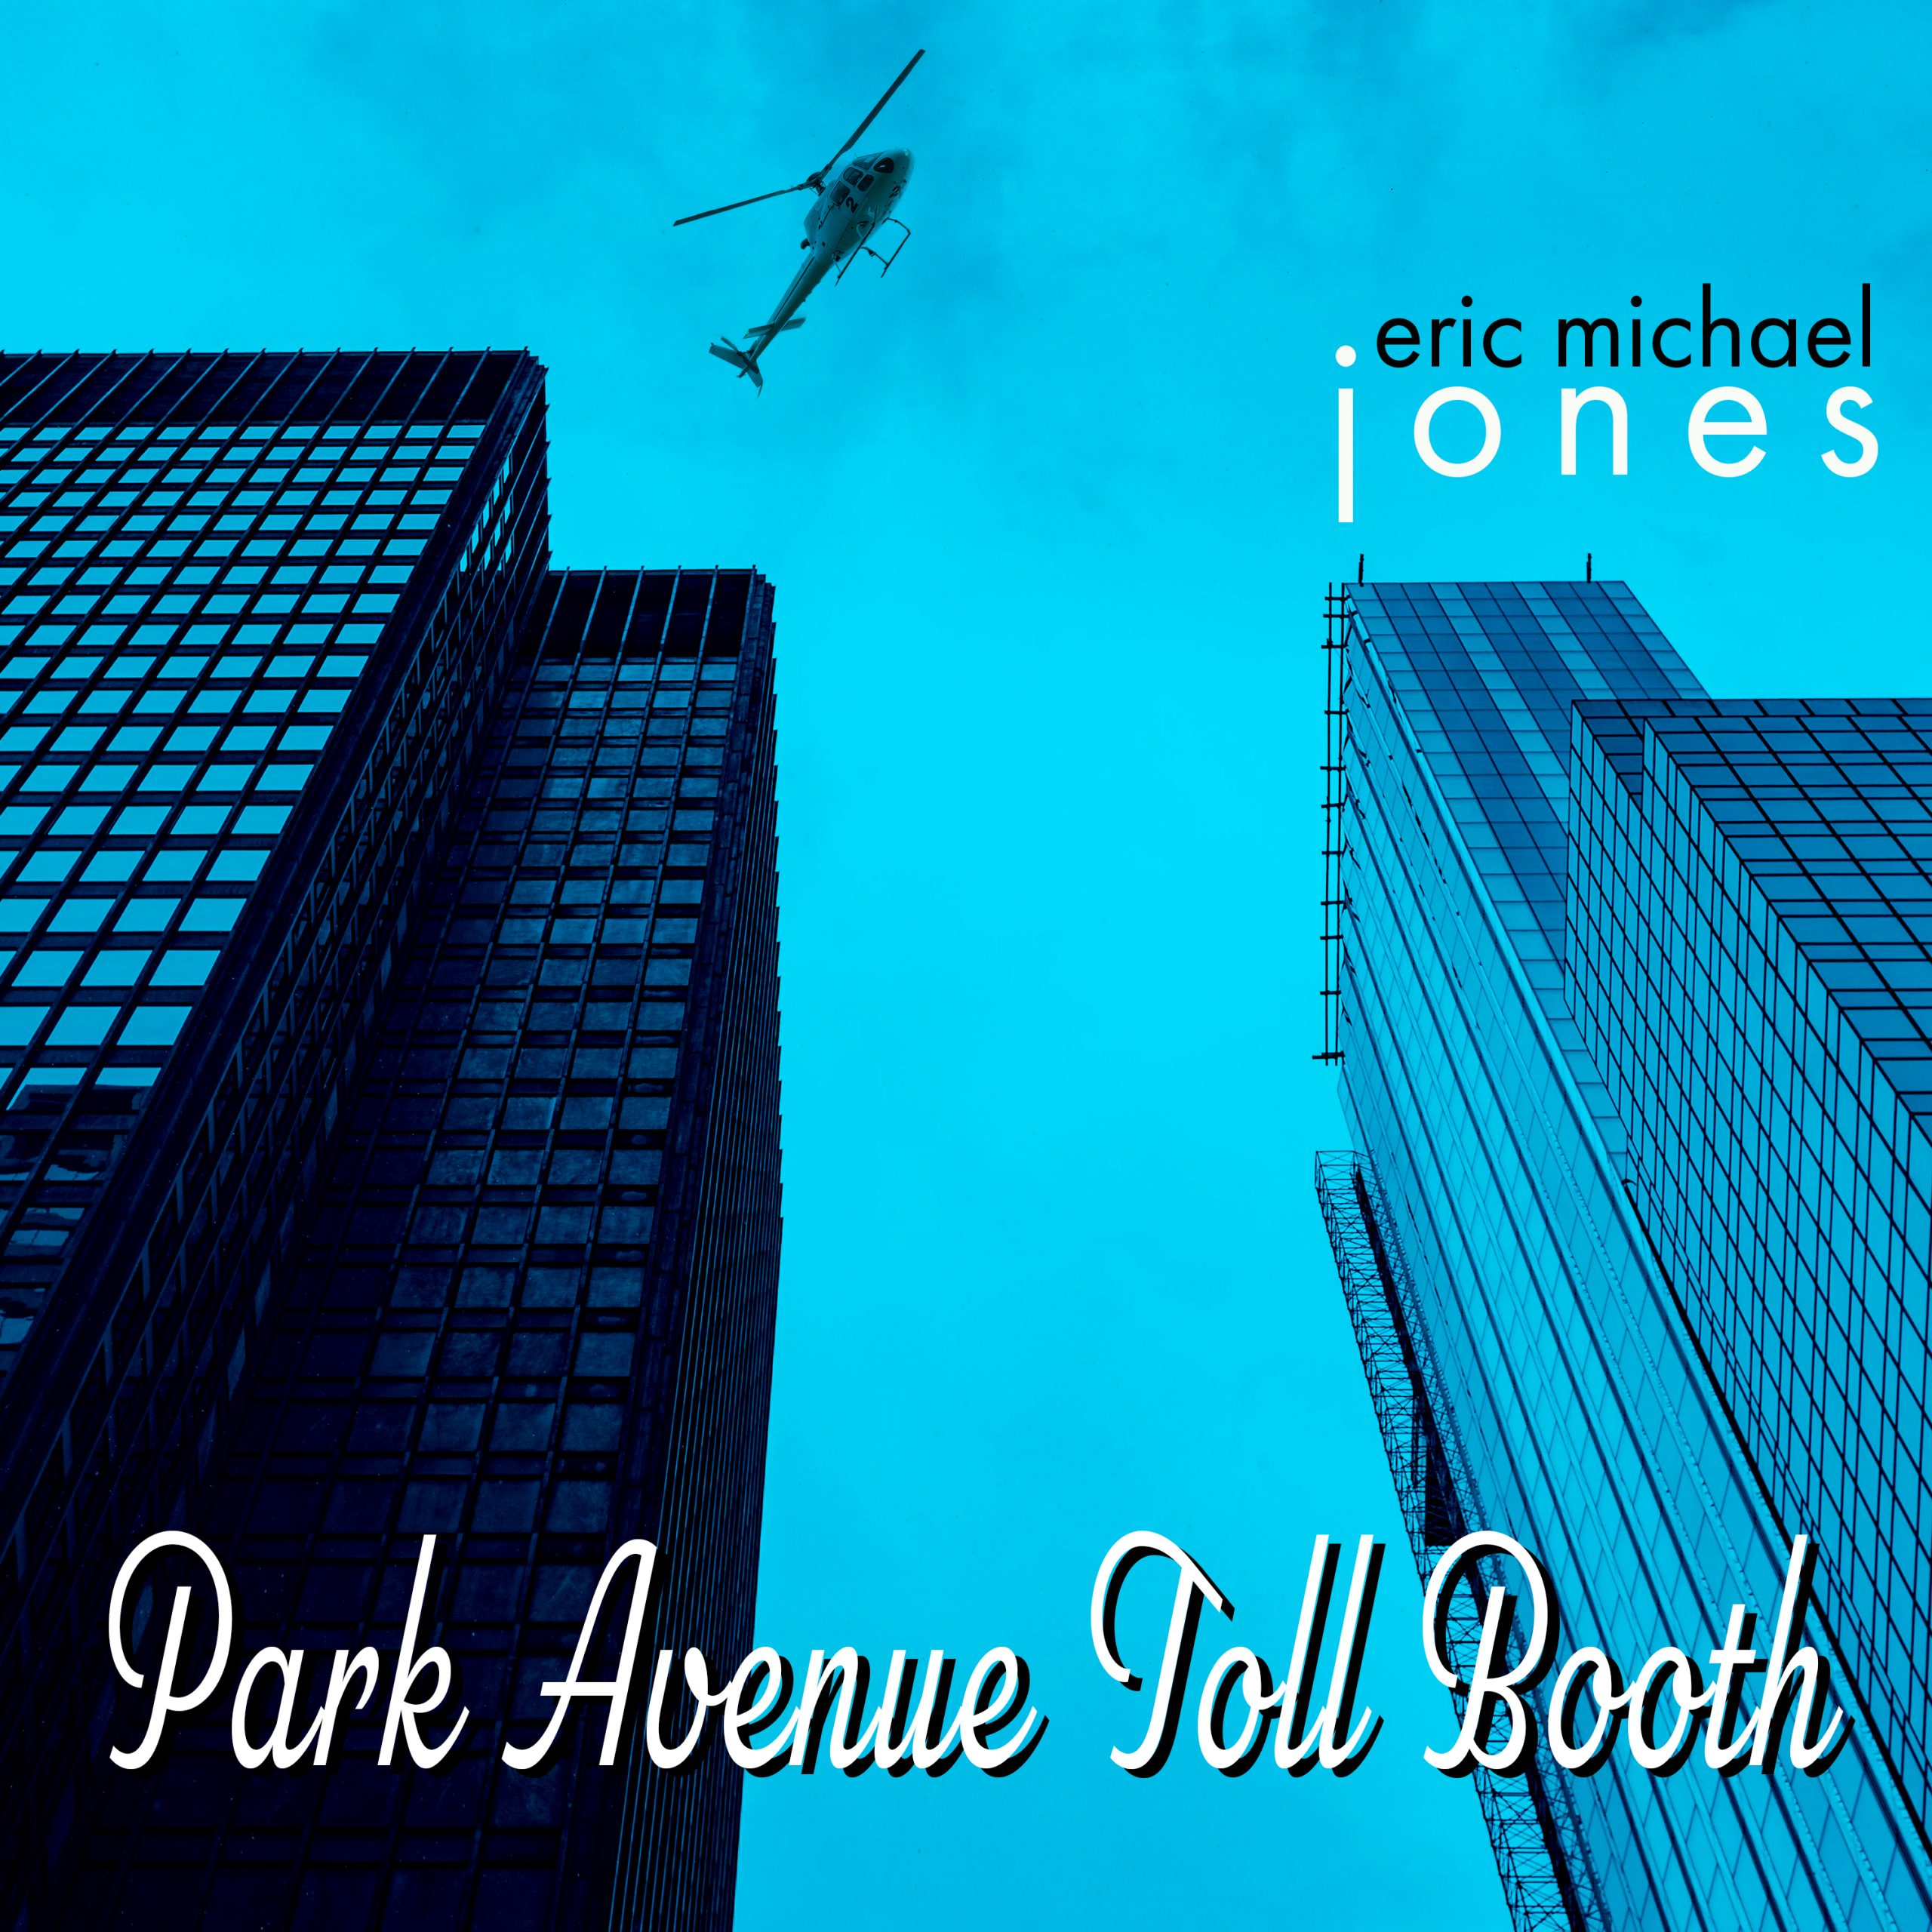 Cover art for Park Avenue Toll Booth, showing the Seagrams Building with a helicopter above it